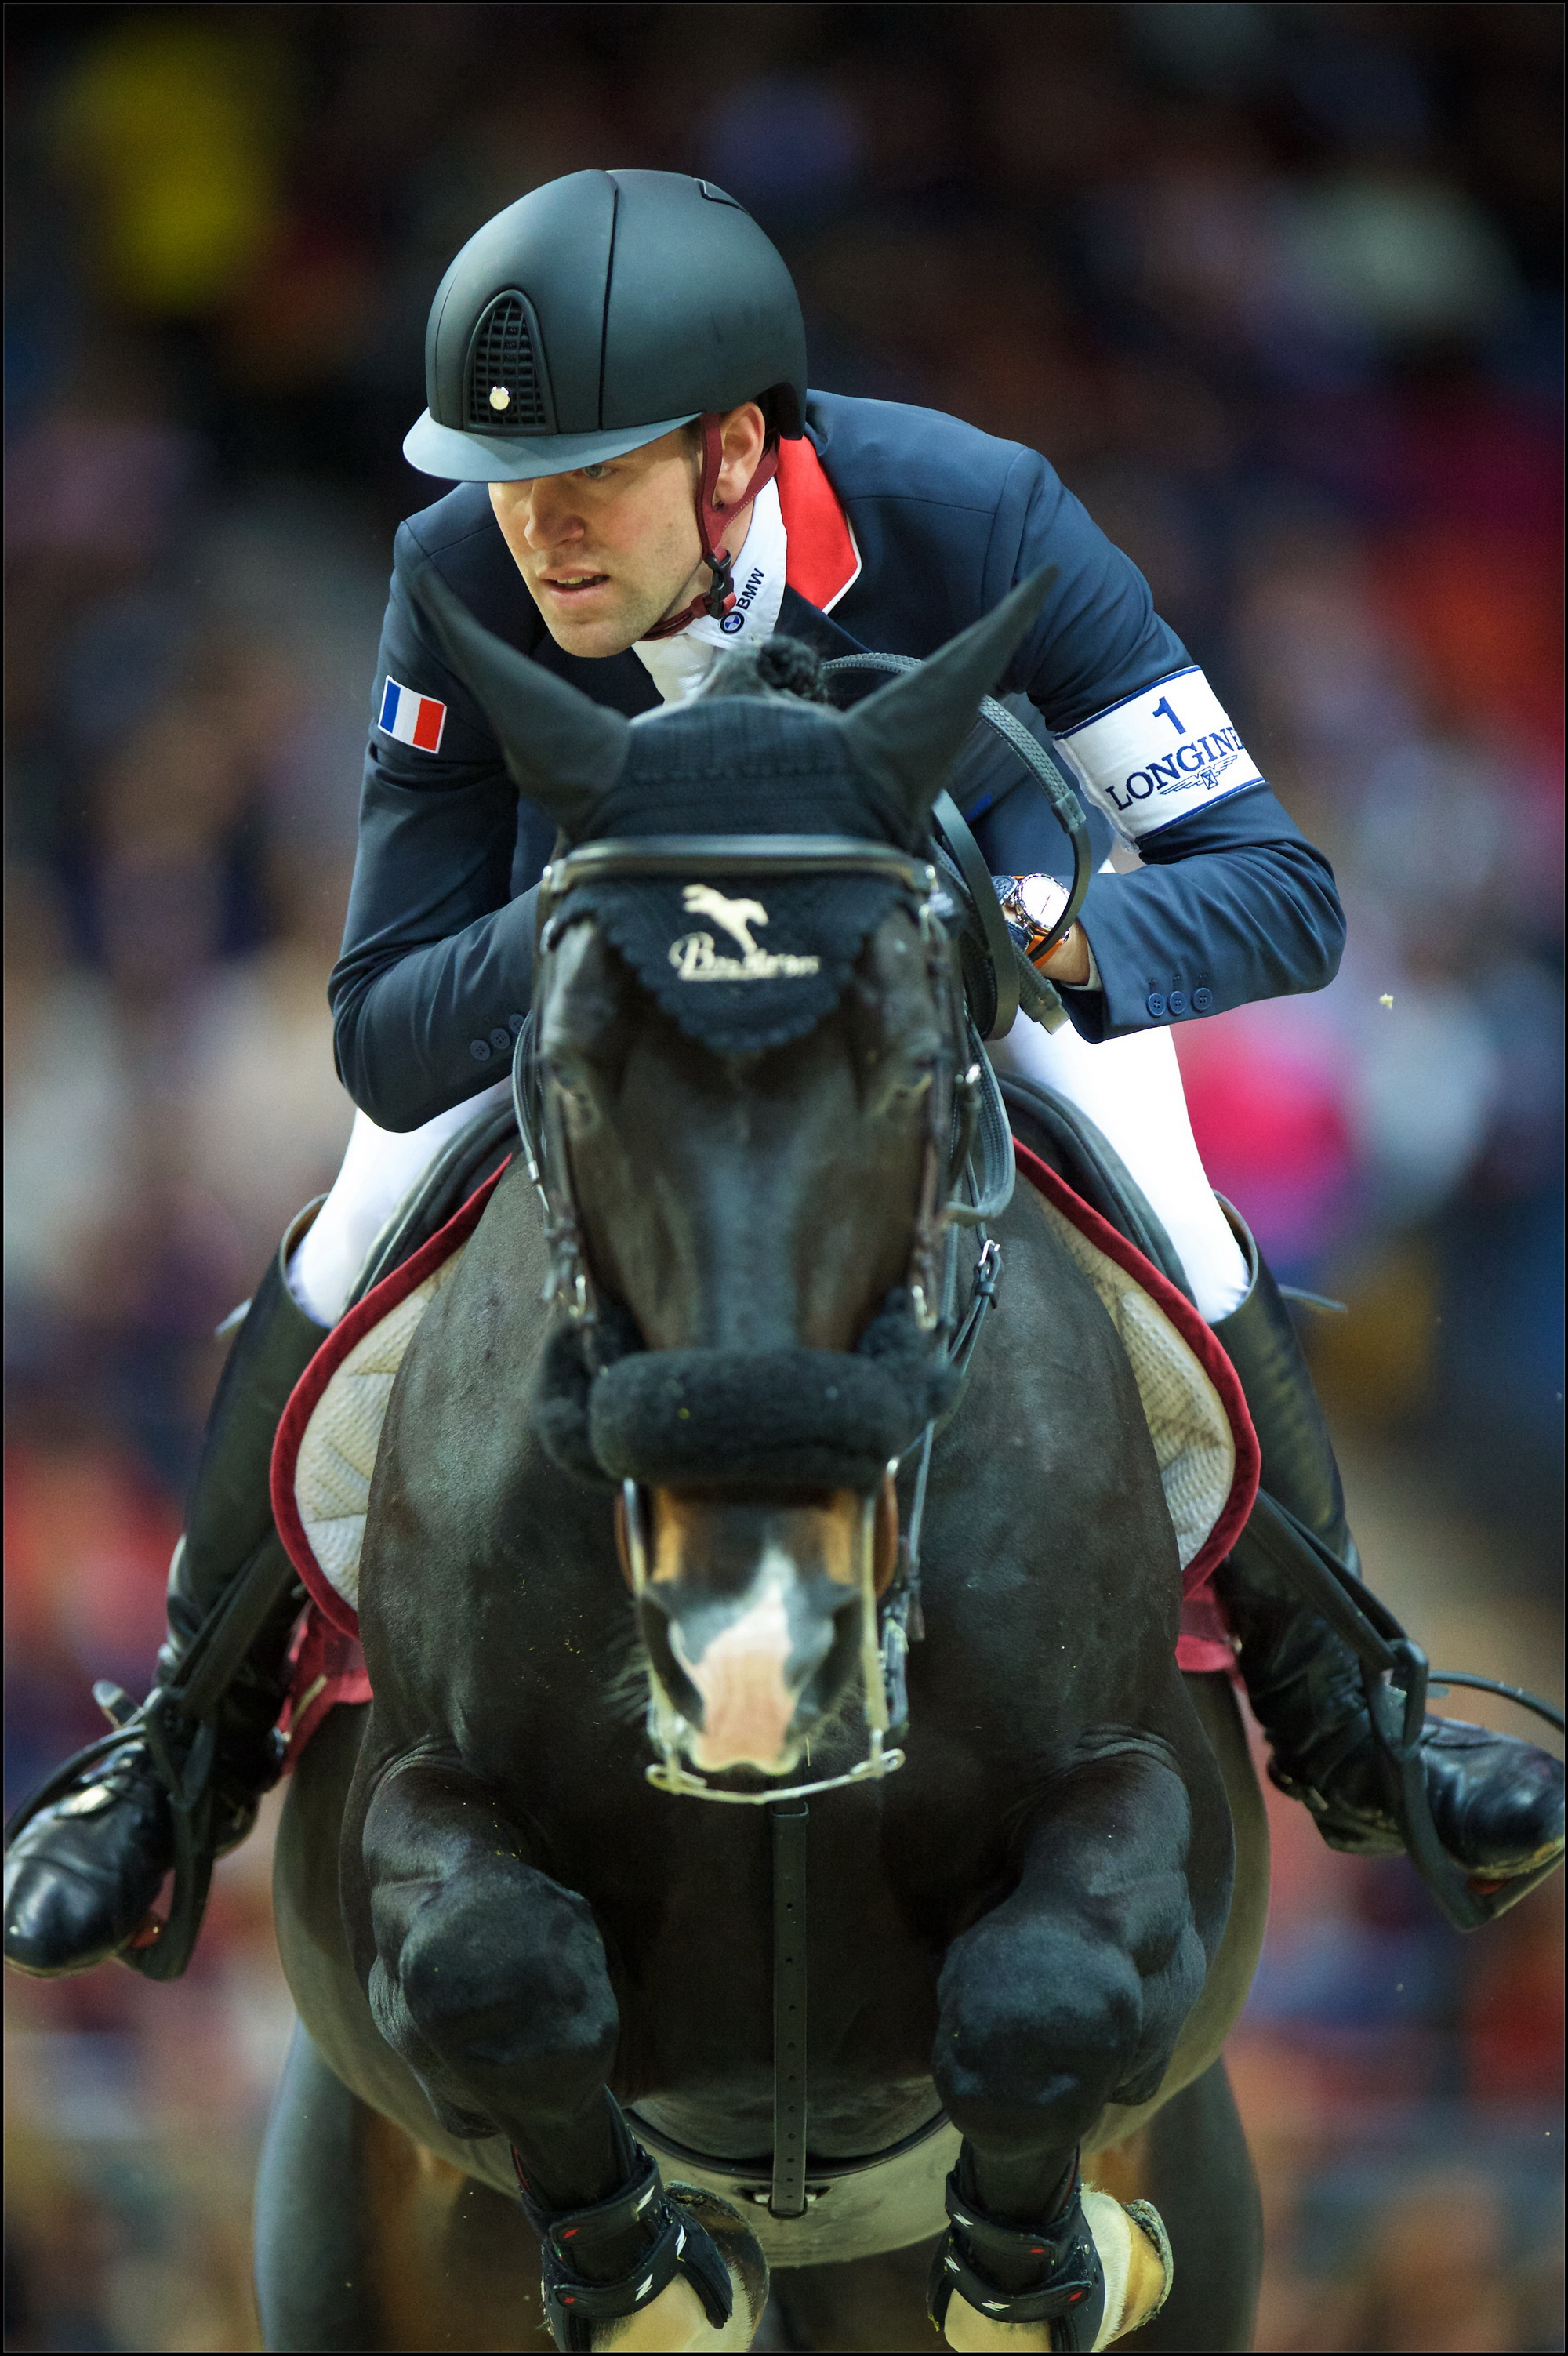 Olympic Jumping athlete Simon Delestre (FRA), Longines world number one, pictured in the first round of the Longines FEI World Cup™ Jumping Final 2016 in Gothenburg (SWE). © FEI/Arnd Bronkhorst